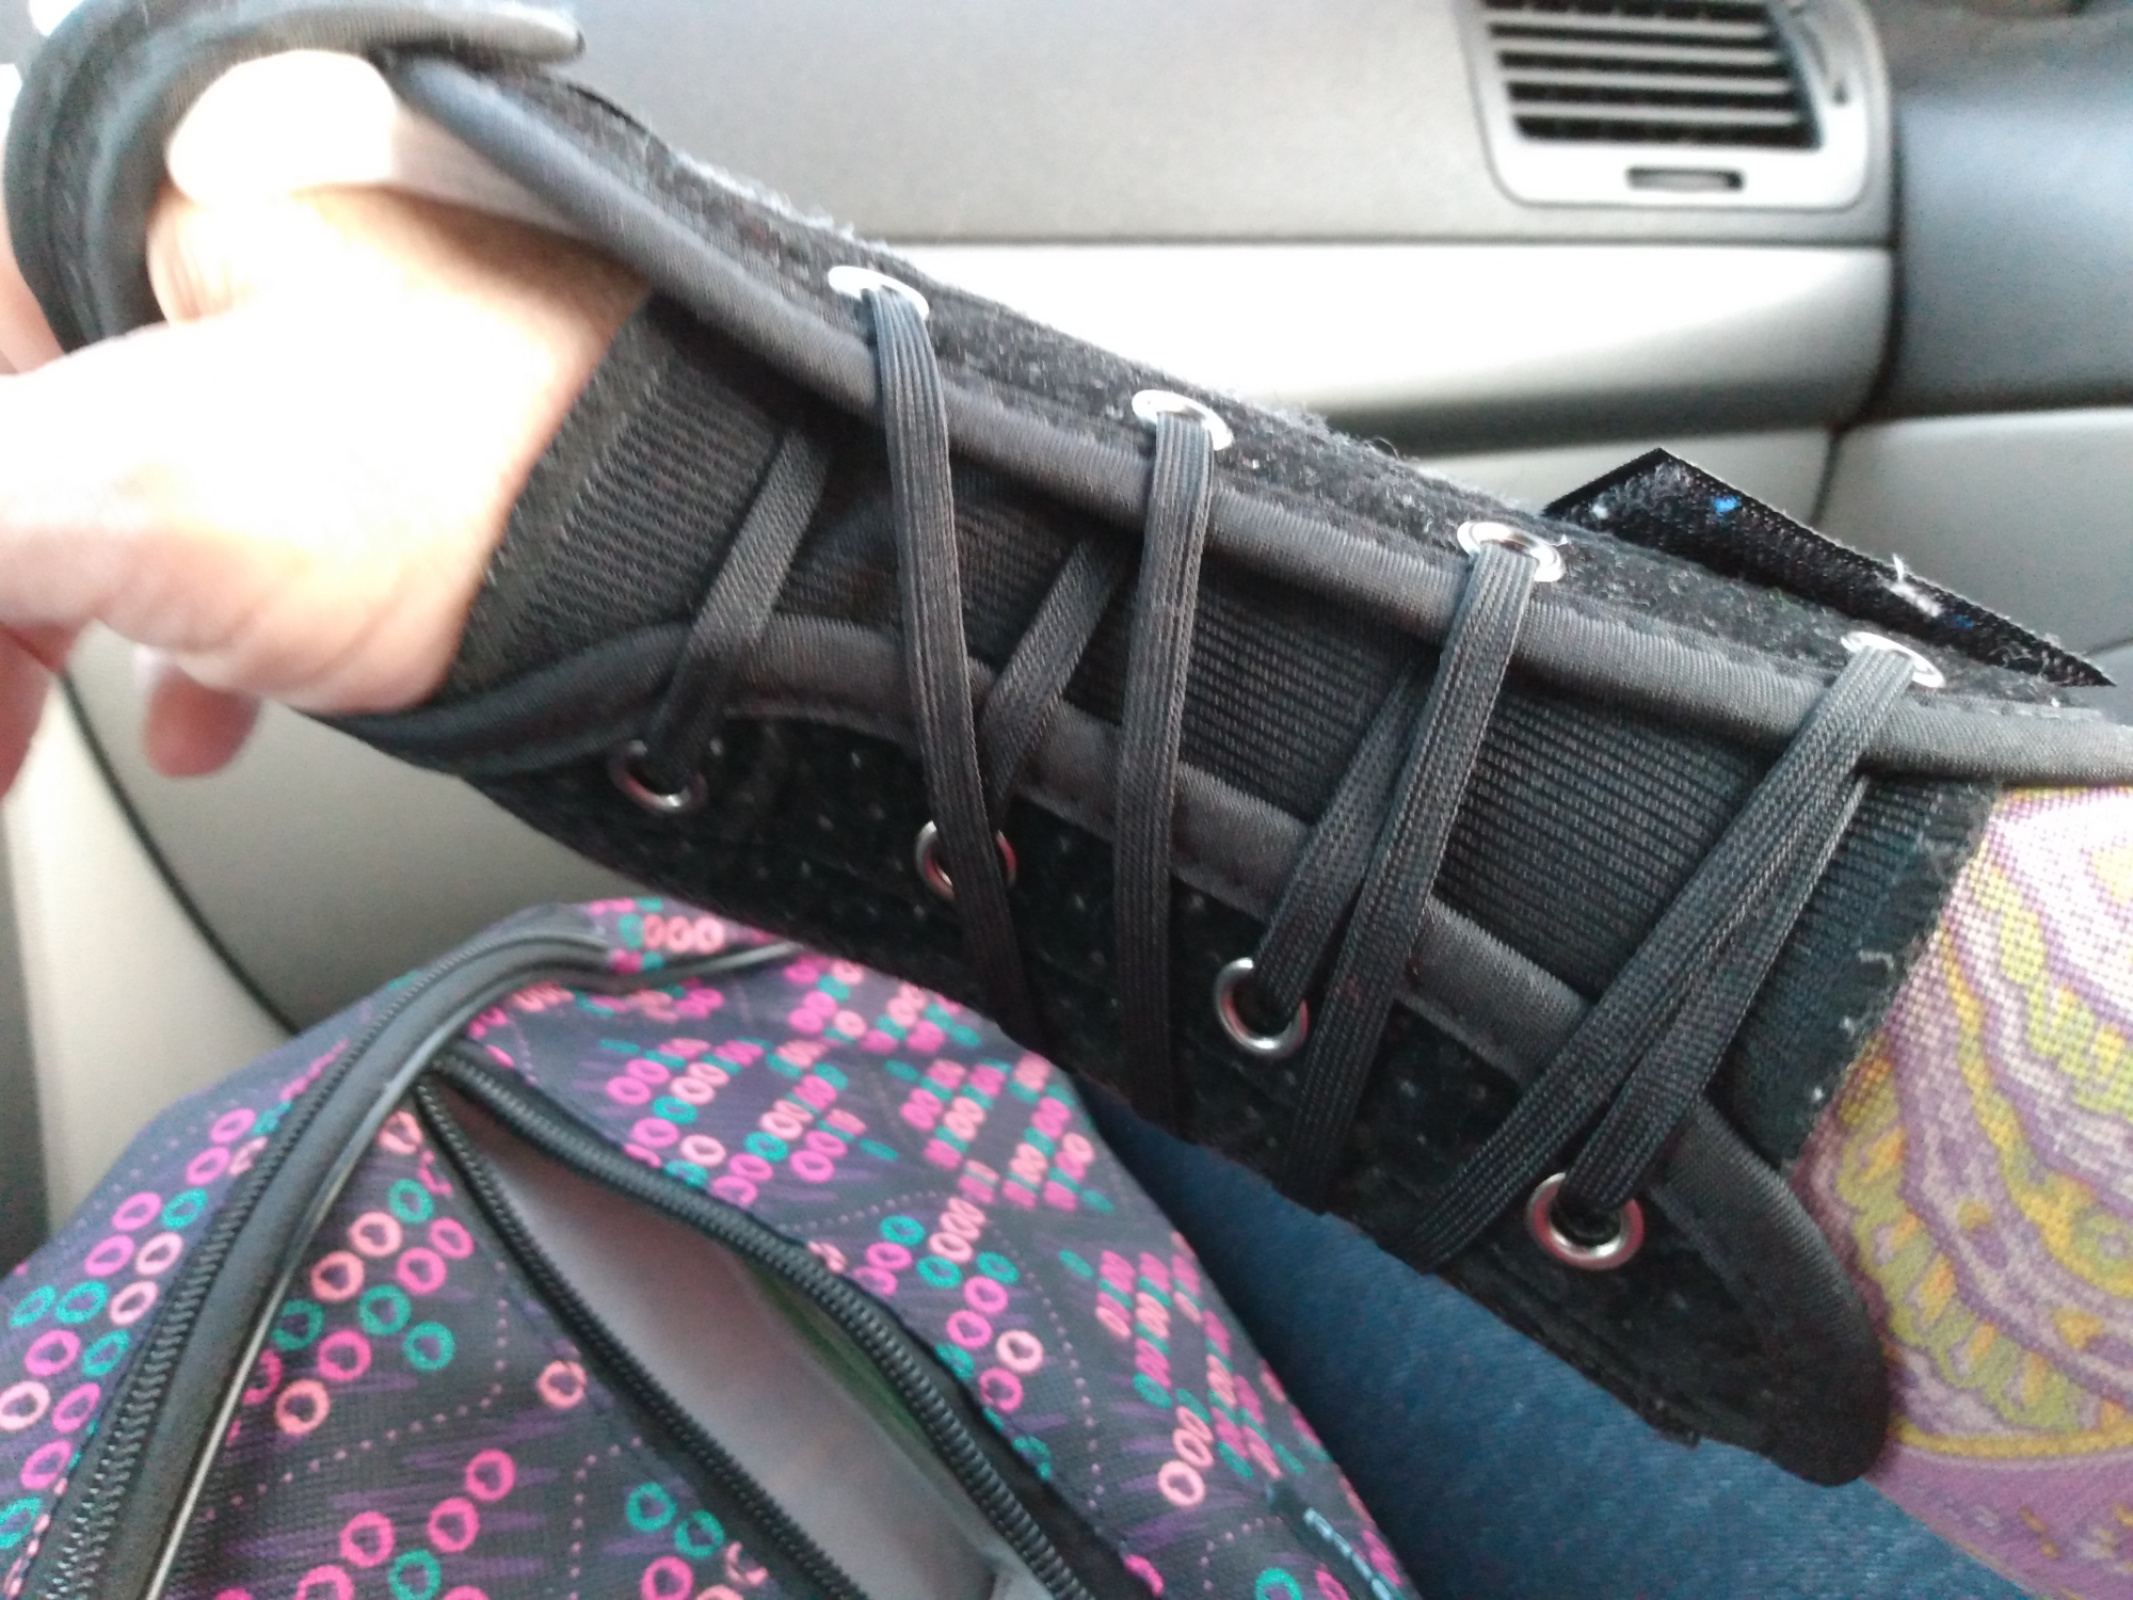 The wrist splint